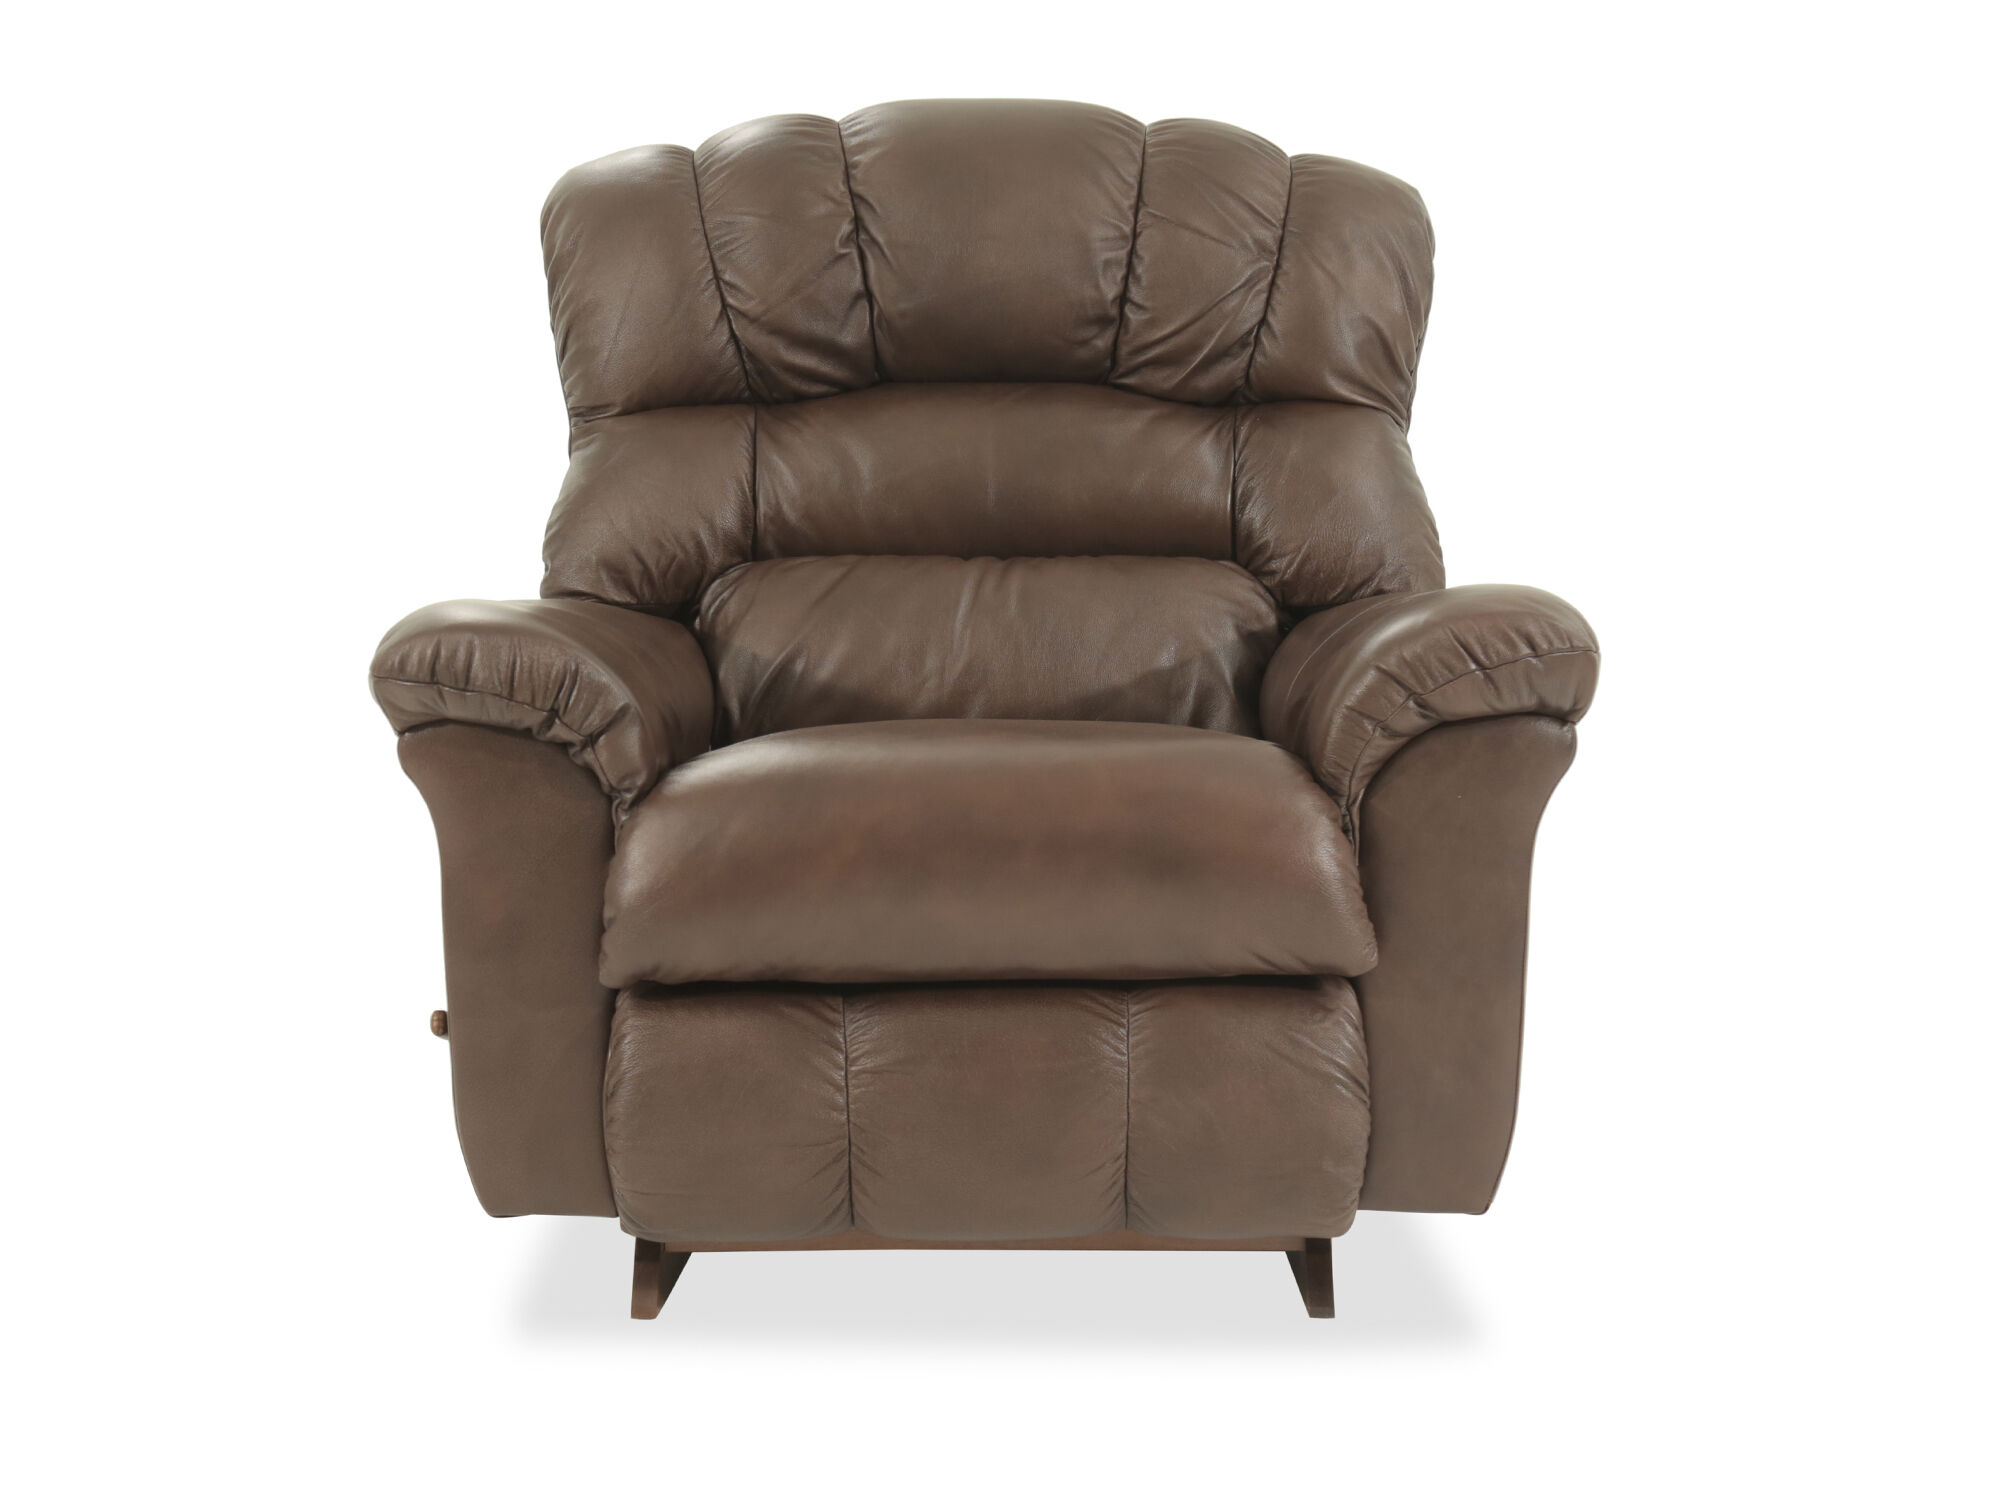 La-Z-Boy Crandell Leather Brown Rocker Recliner  sc 1 st  Mathis Brothers : cost of lazy boy recliners - islam-shia.org